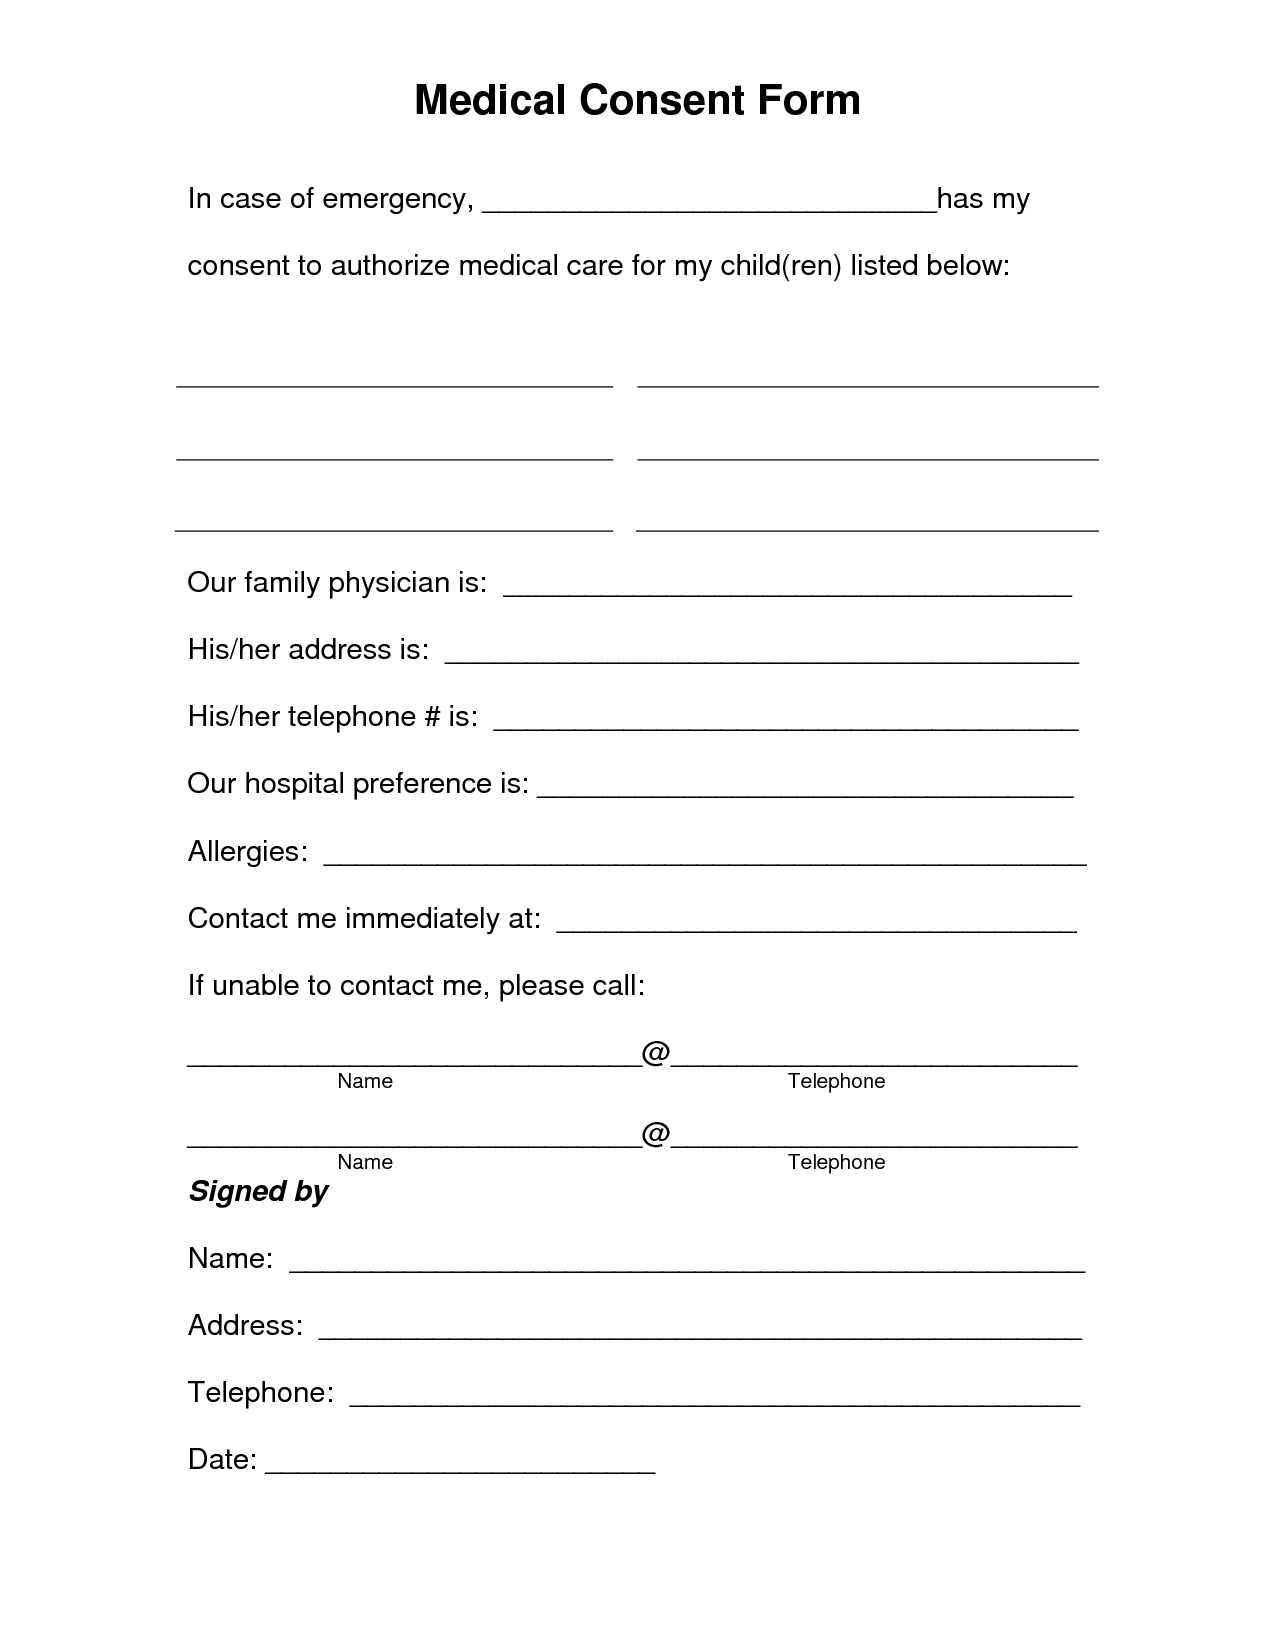 Free printable medical consent form free medical consent form free printable medical consent form free medical consent form falaconquin